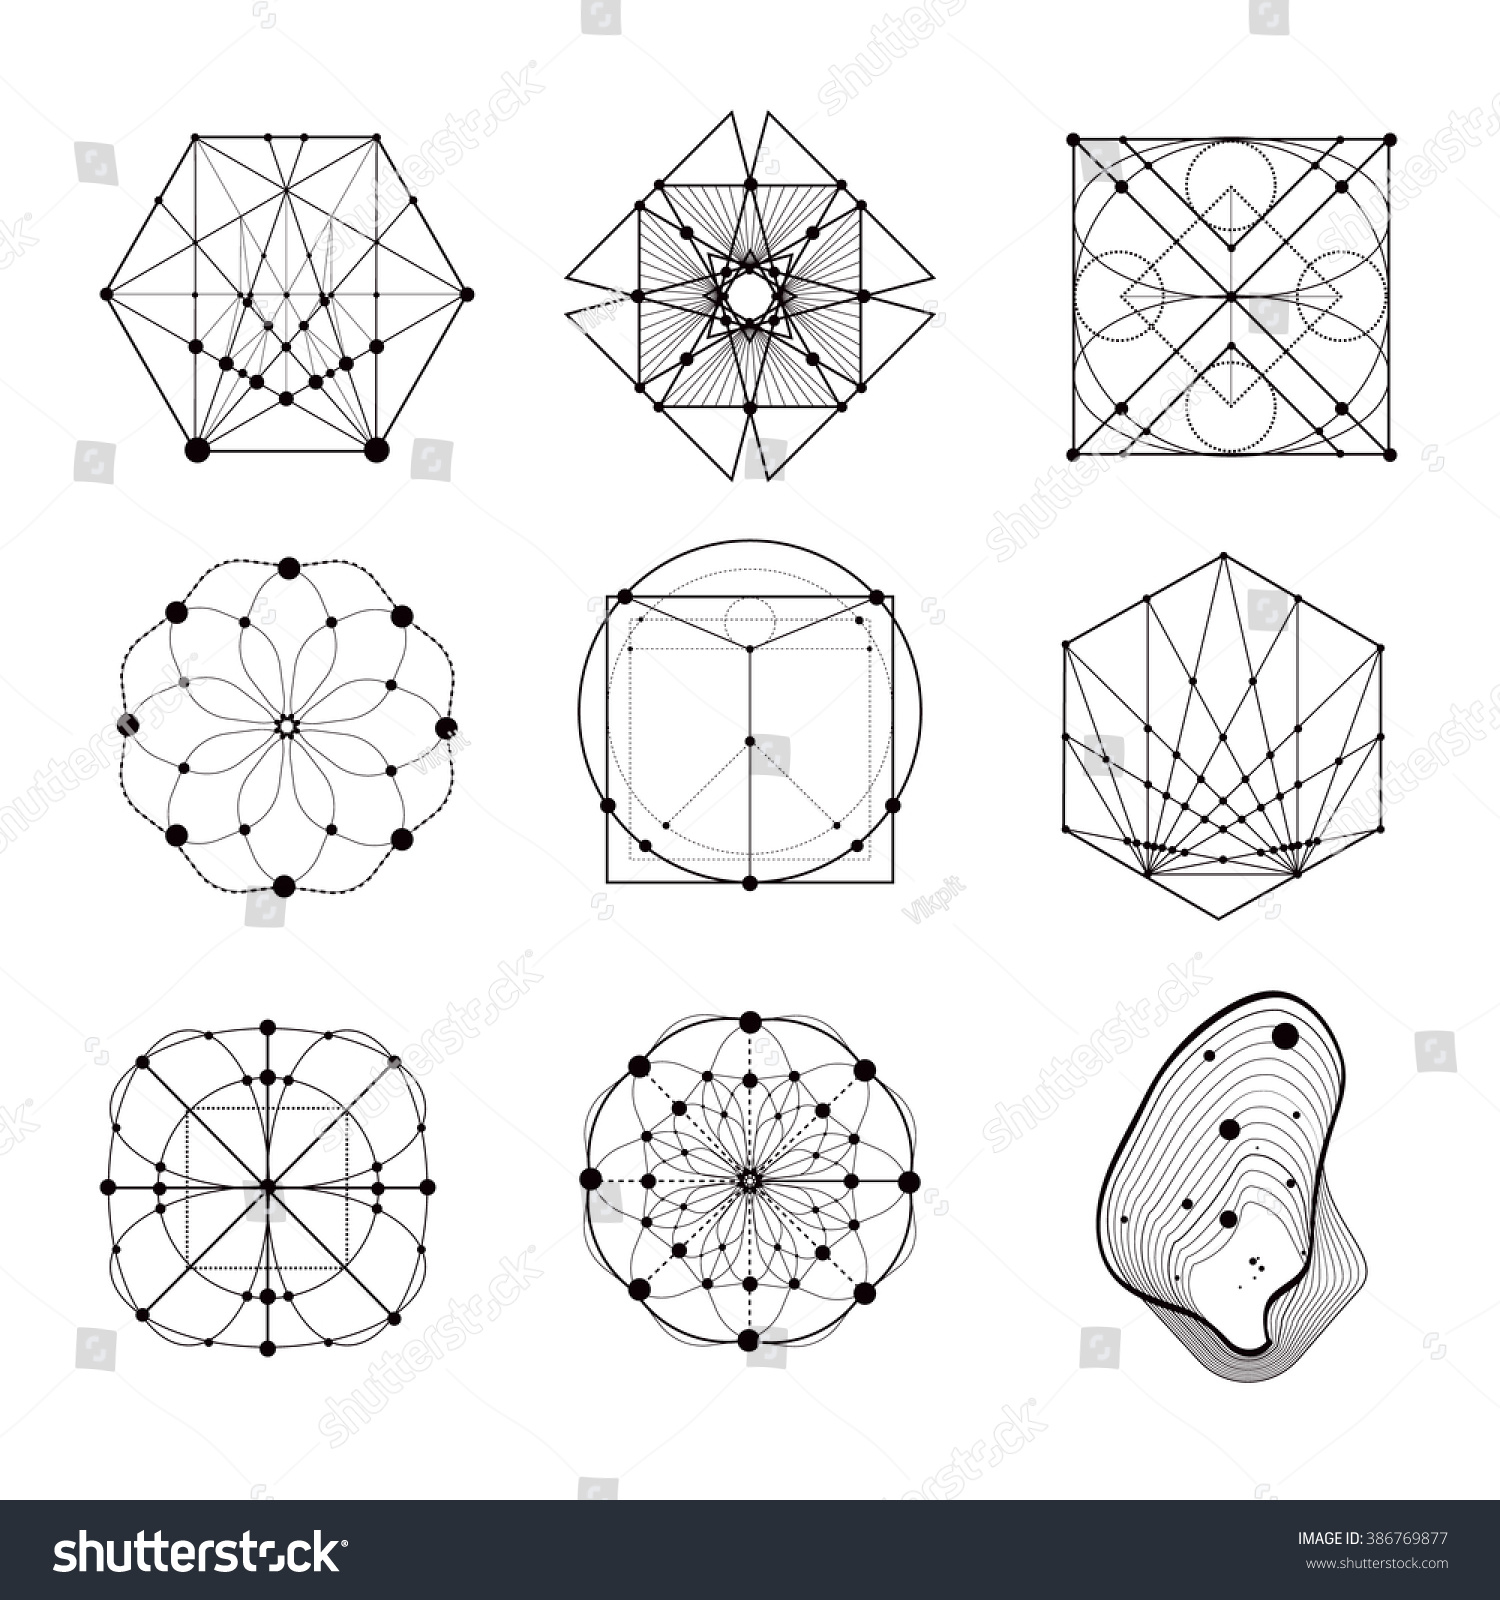 Lines Shapes And Forms : Sacred geometry forms shapes lines logo stock vector